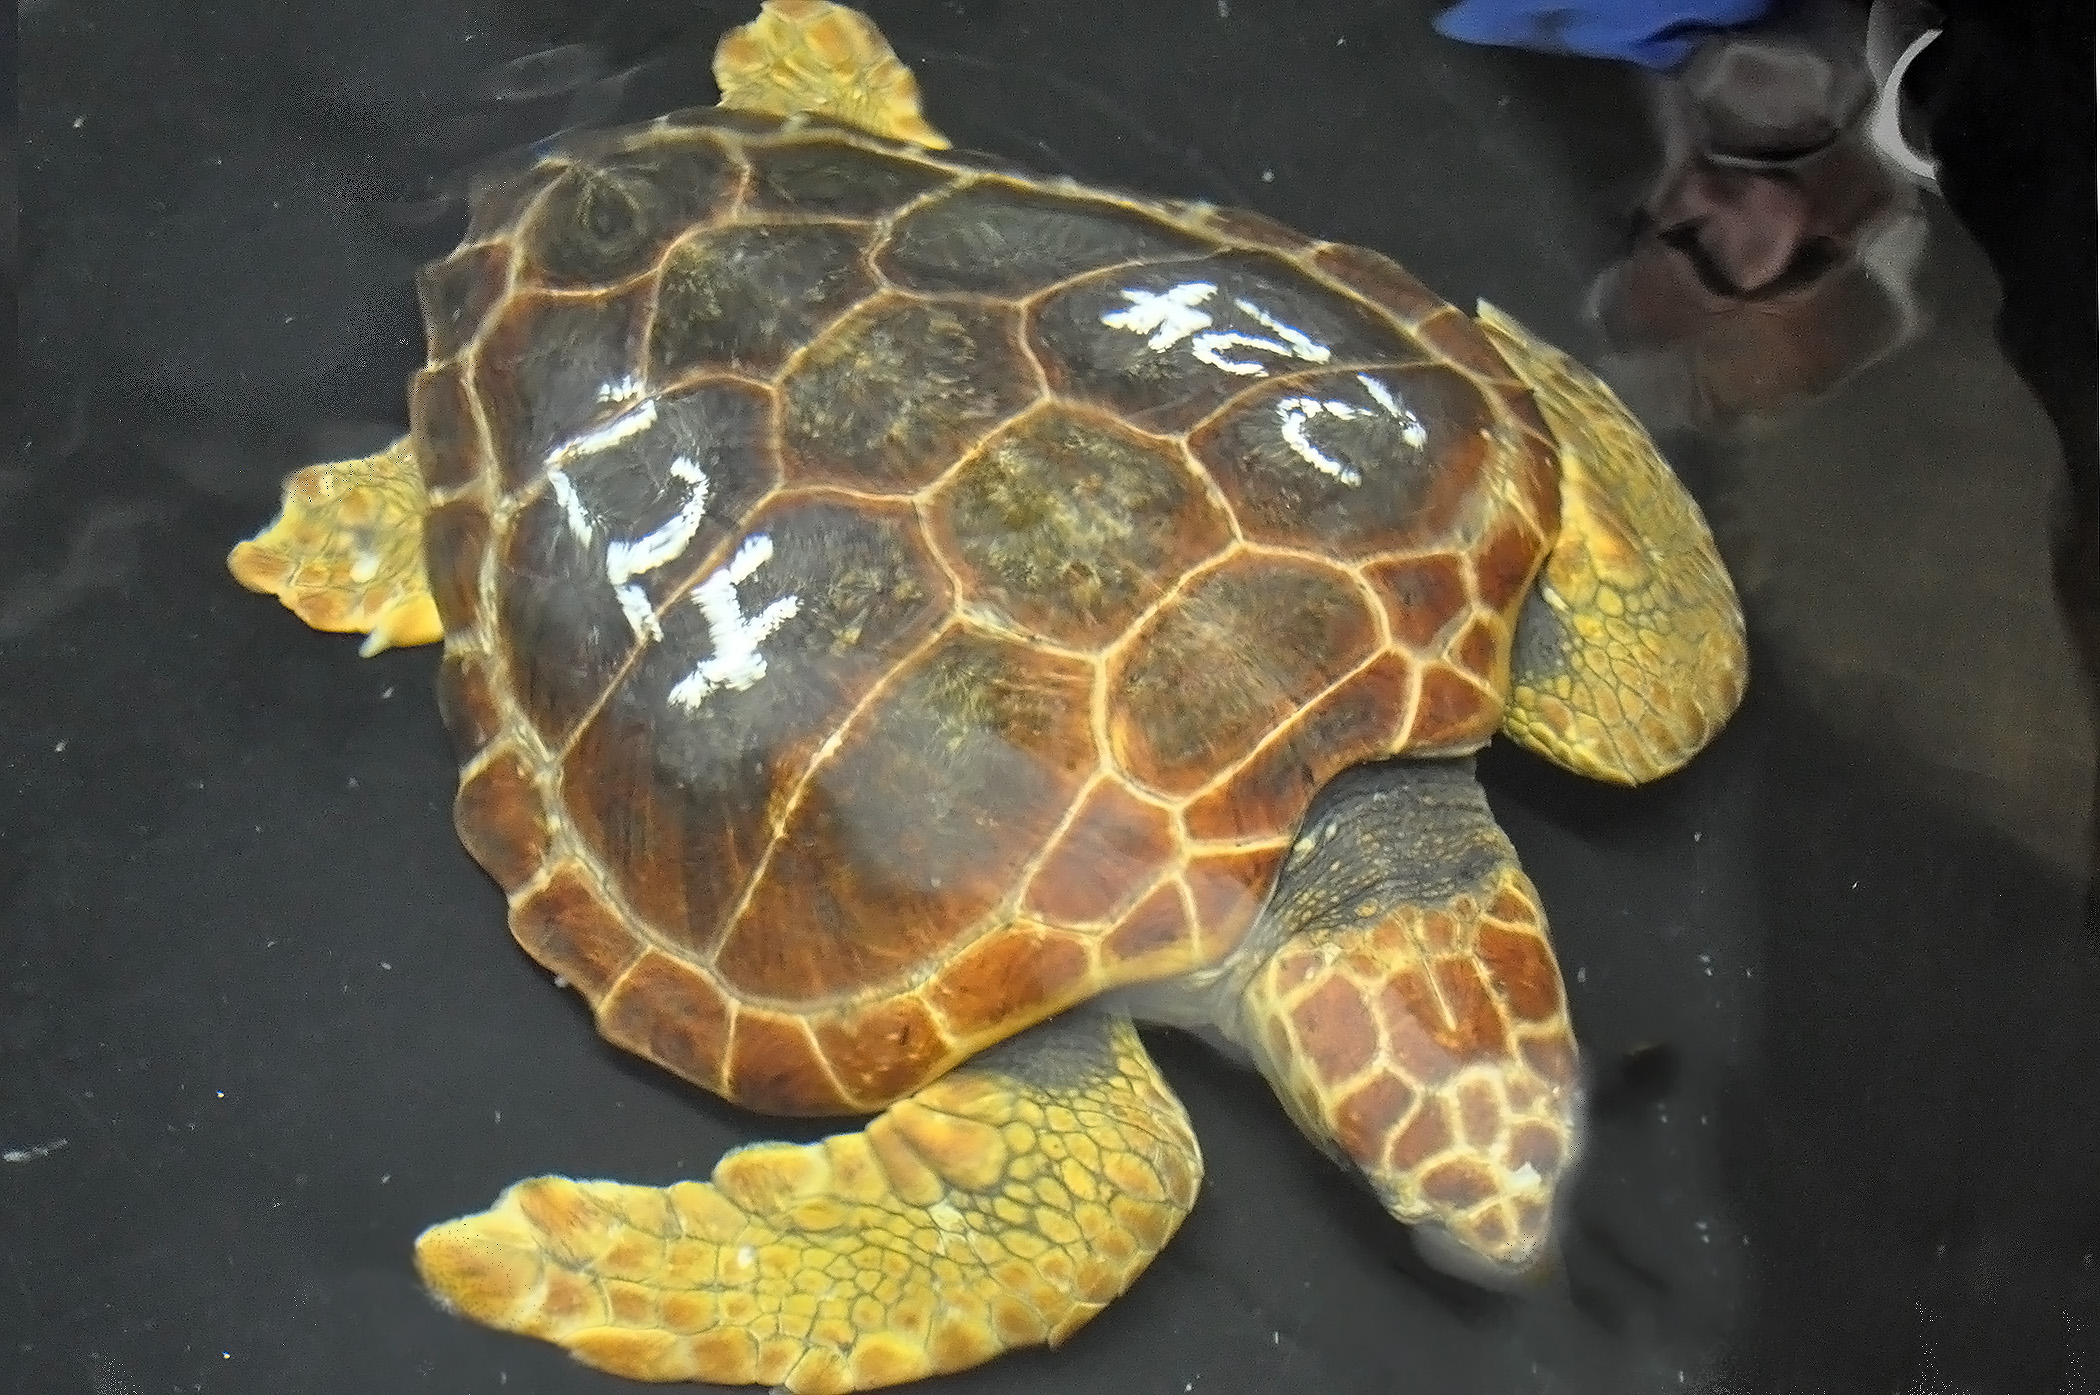 loggerhead sea turtle Find out what's known about loggerhead sea turtles, caretta caretta, reptilia, testudines, cheloniidae, including their world range and habitats, feeding behaviors, life history, ecology, reproduction, and conservation status.